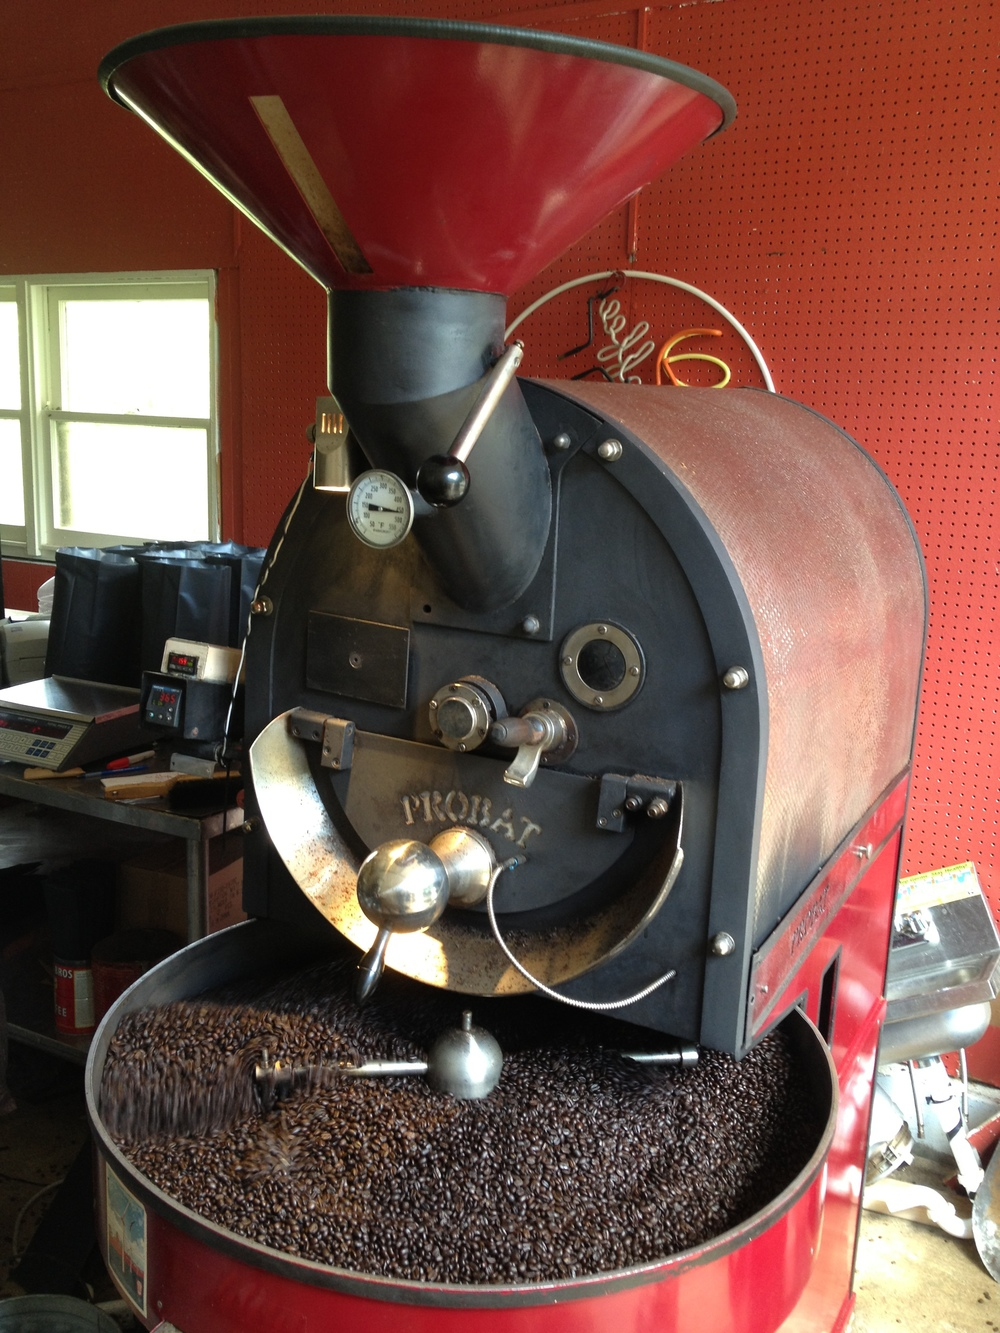 Our vintage Probat roaster.